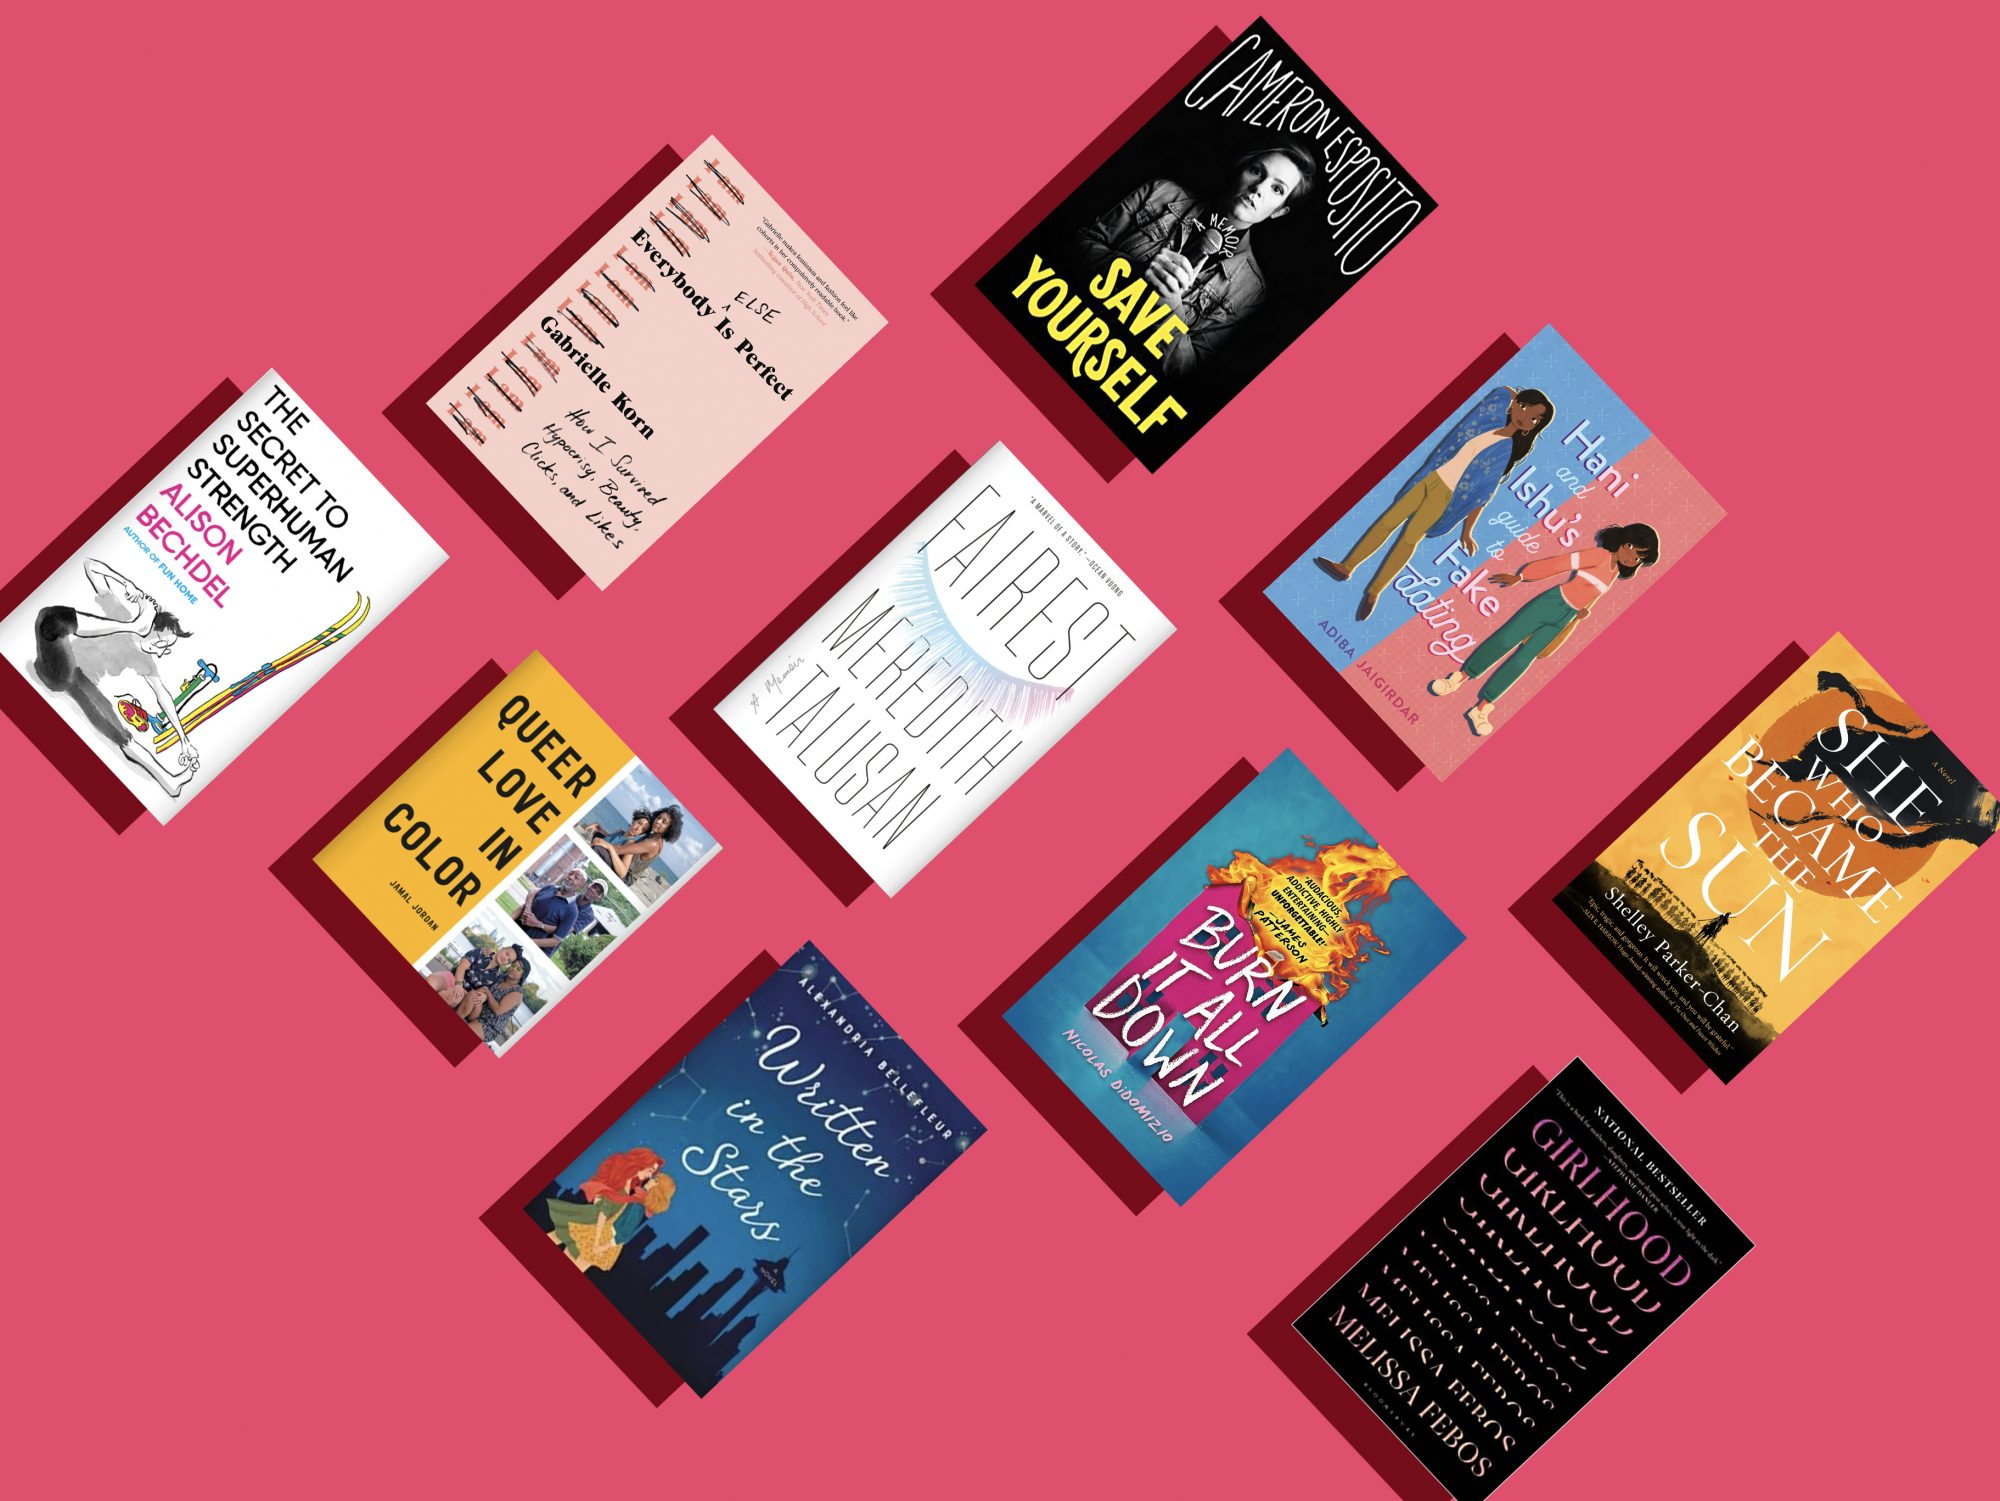 13 New LGBTQIA+ Books That Are Perfect for Pride Month Reading (and Beyond)